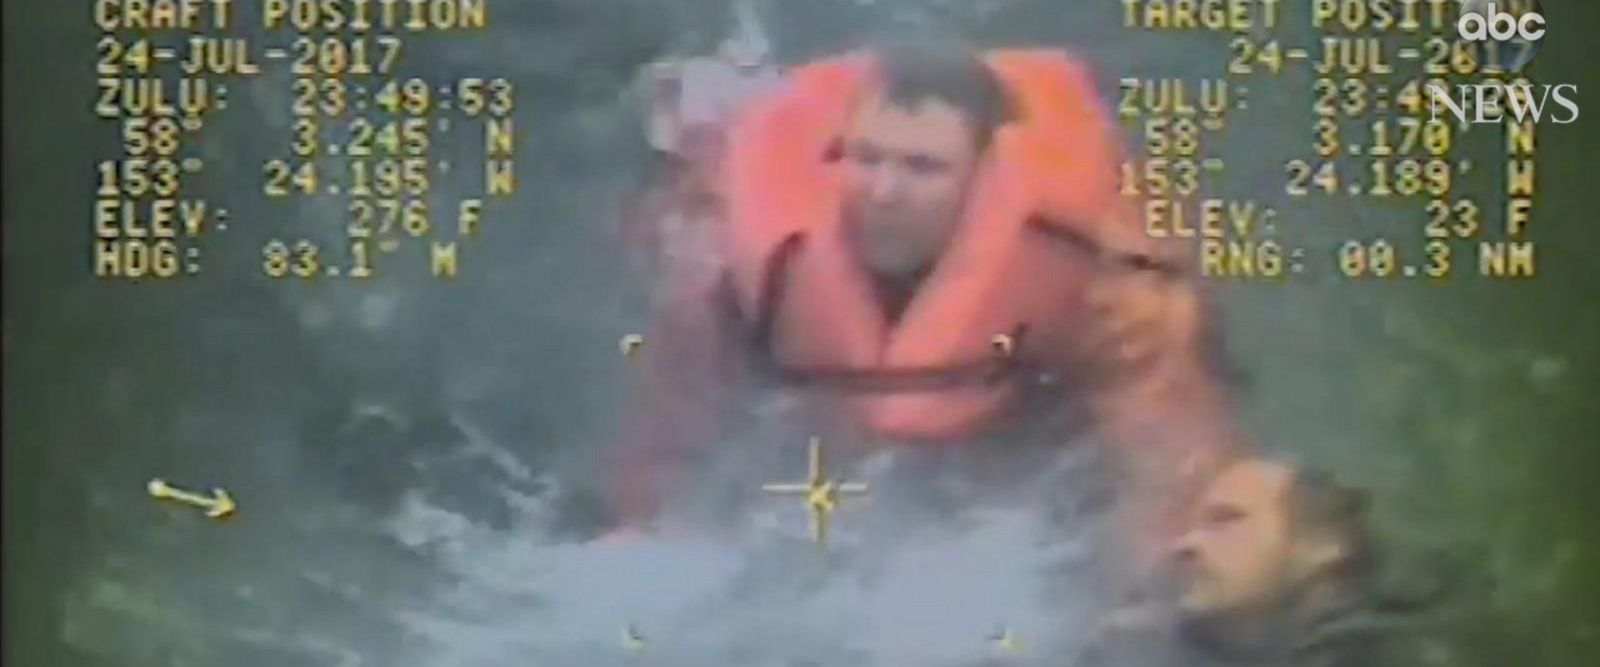 VIDEO: Alaskan fishing boat captain leaps into frigid sea to save crew after capsizing